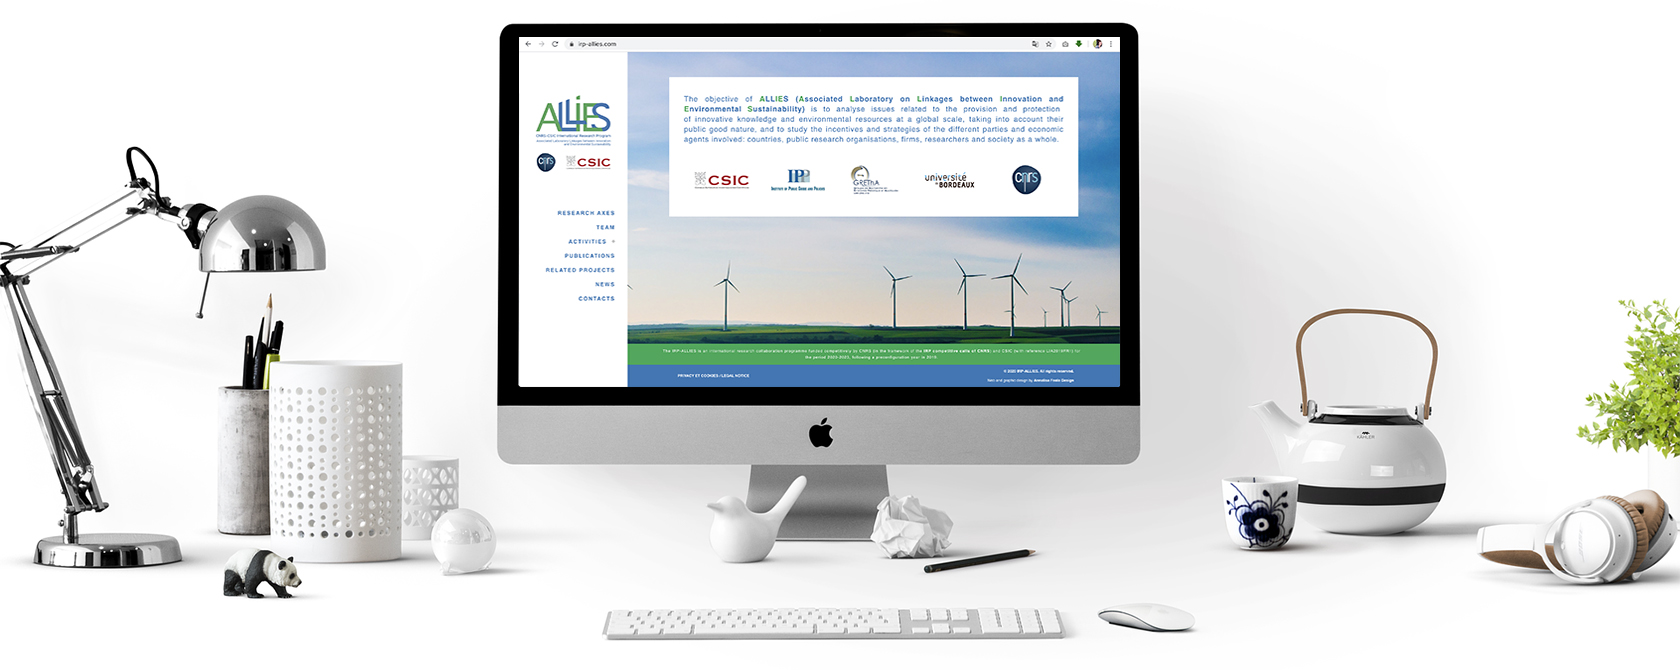 ALLIES-site-web-home